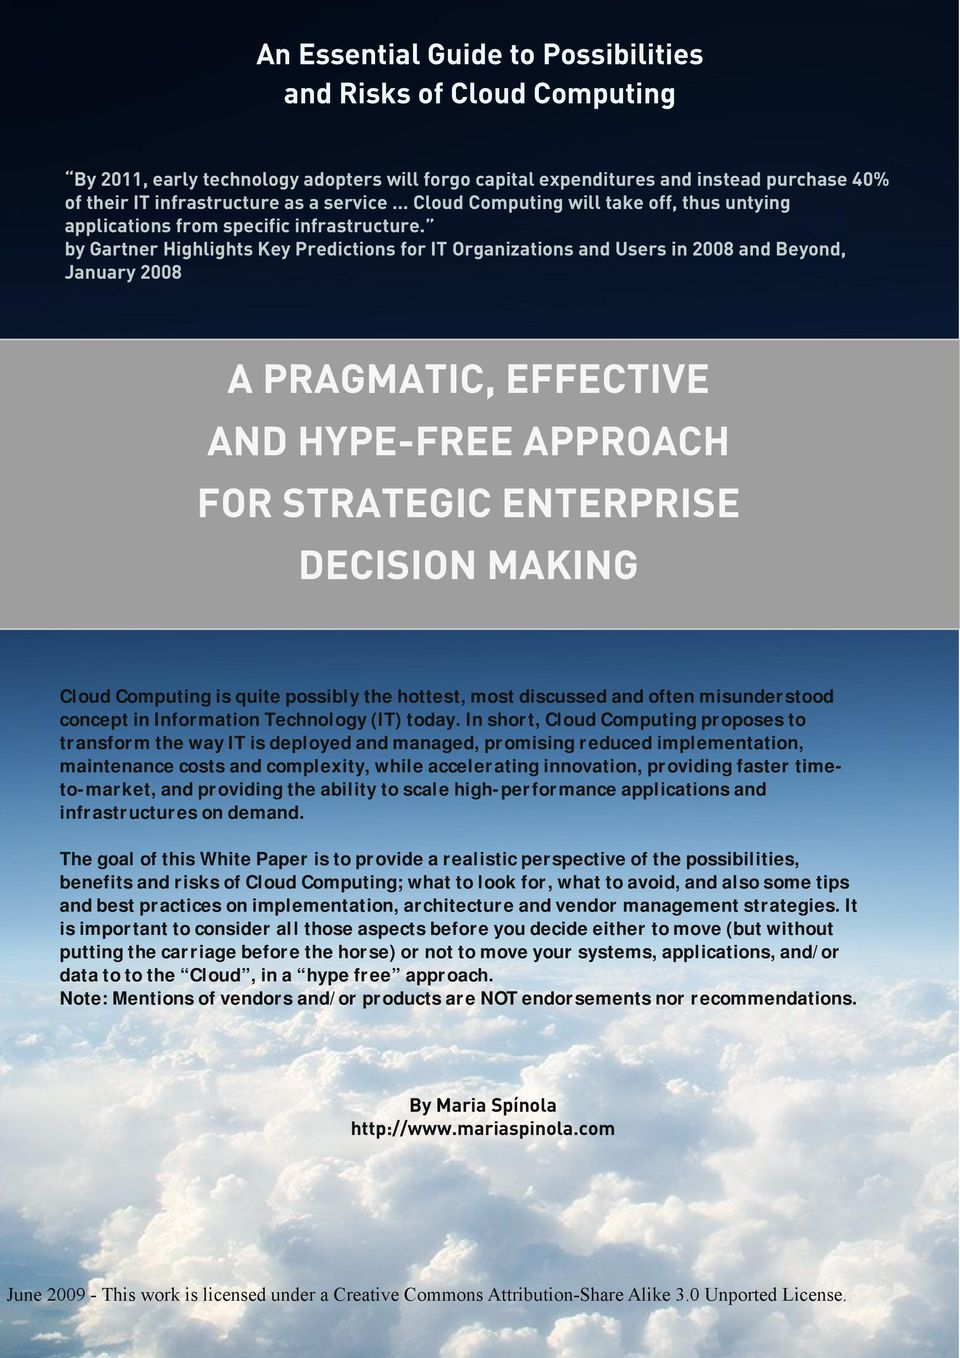 by Gartner Highlights Key Predictions for IT Organizations and Users in 2008 and Beyond, January 2008 A PRAGMATIC, EFFECTIVE AND HYPE-FREE APPROACH FOR STRATEGIC ENTERPRISE DECISION MAKING Cloud